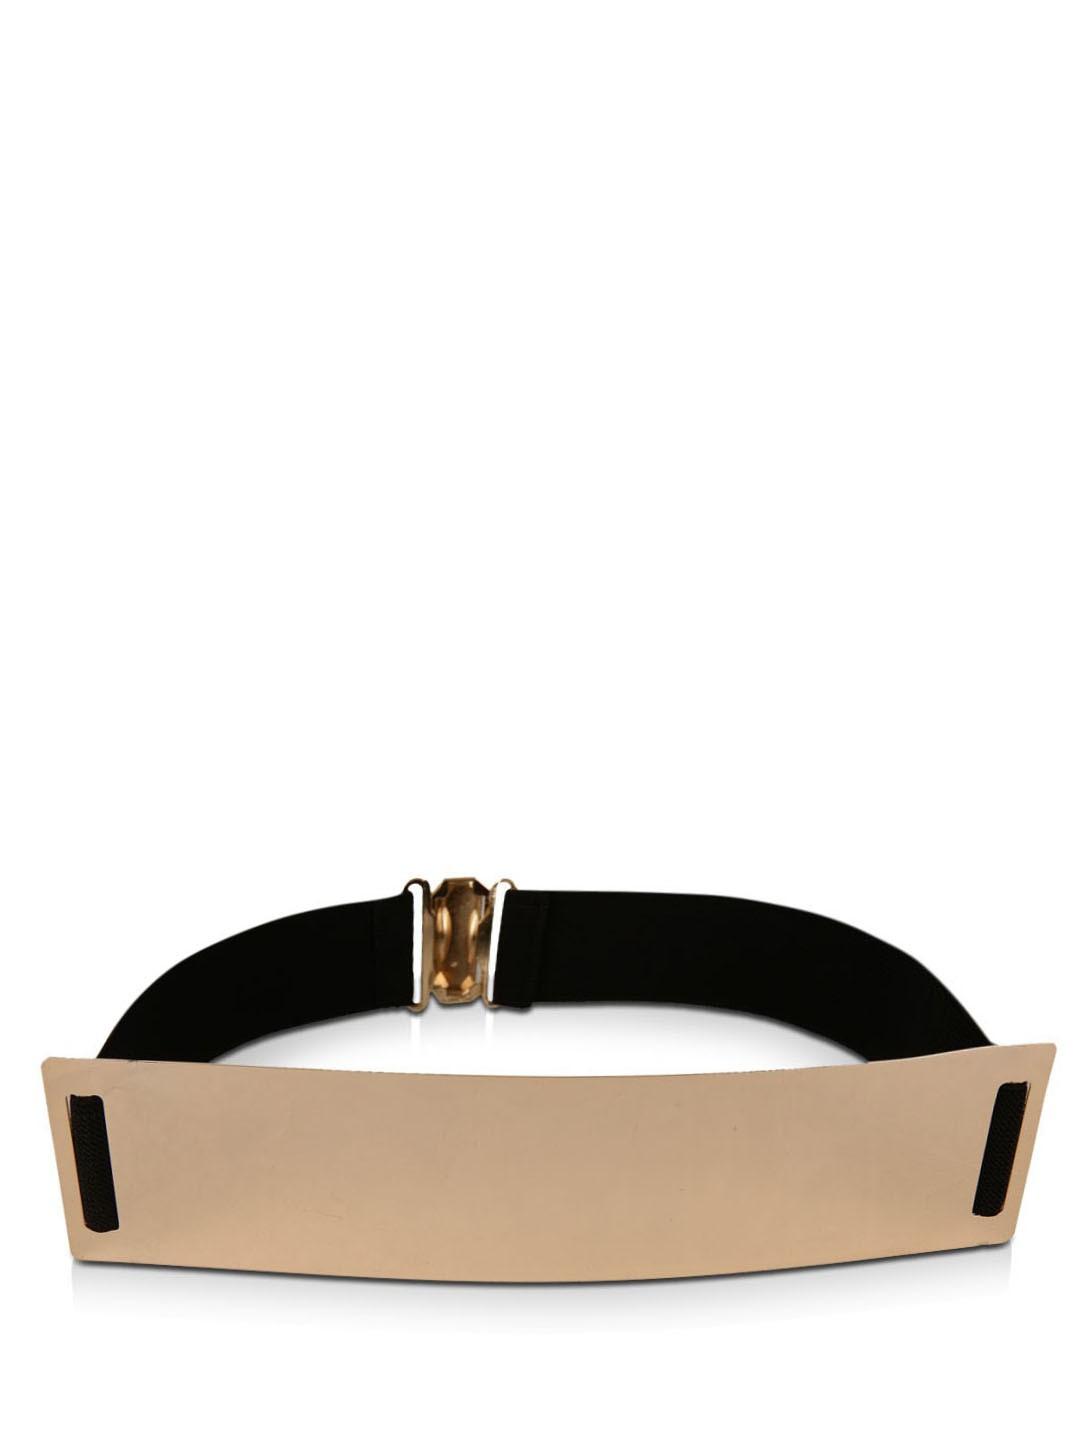 Shop for womens gold belts online at Target. Free shipping on purchases over $35 and save 5% every day with your Target REDcard.